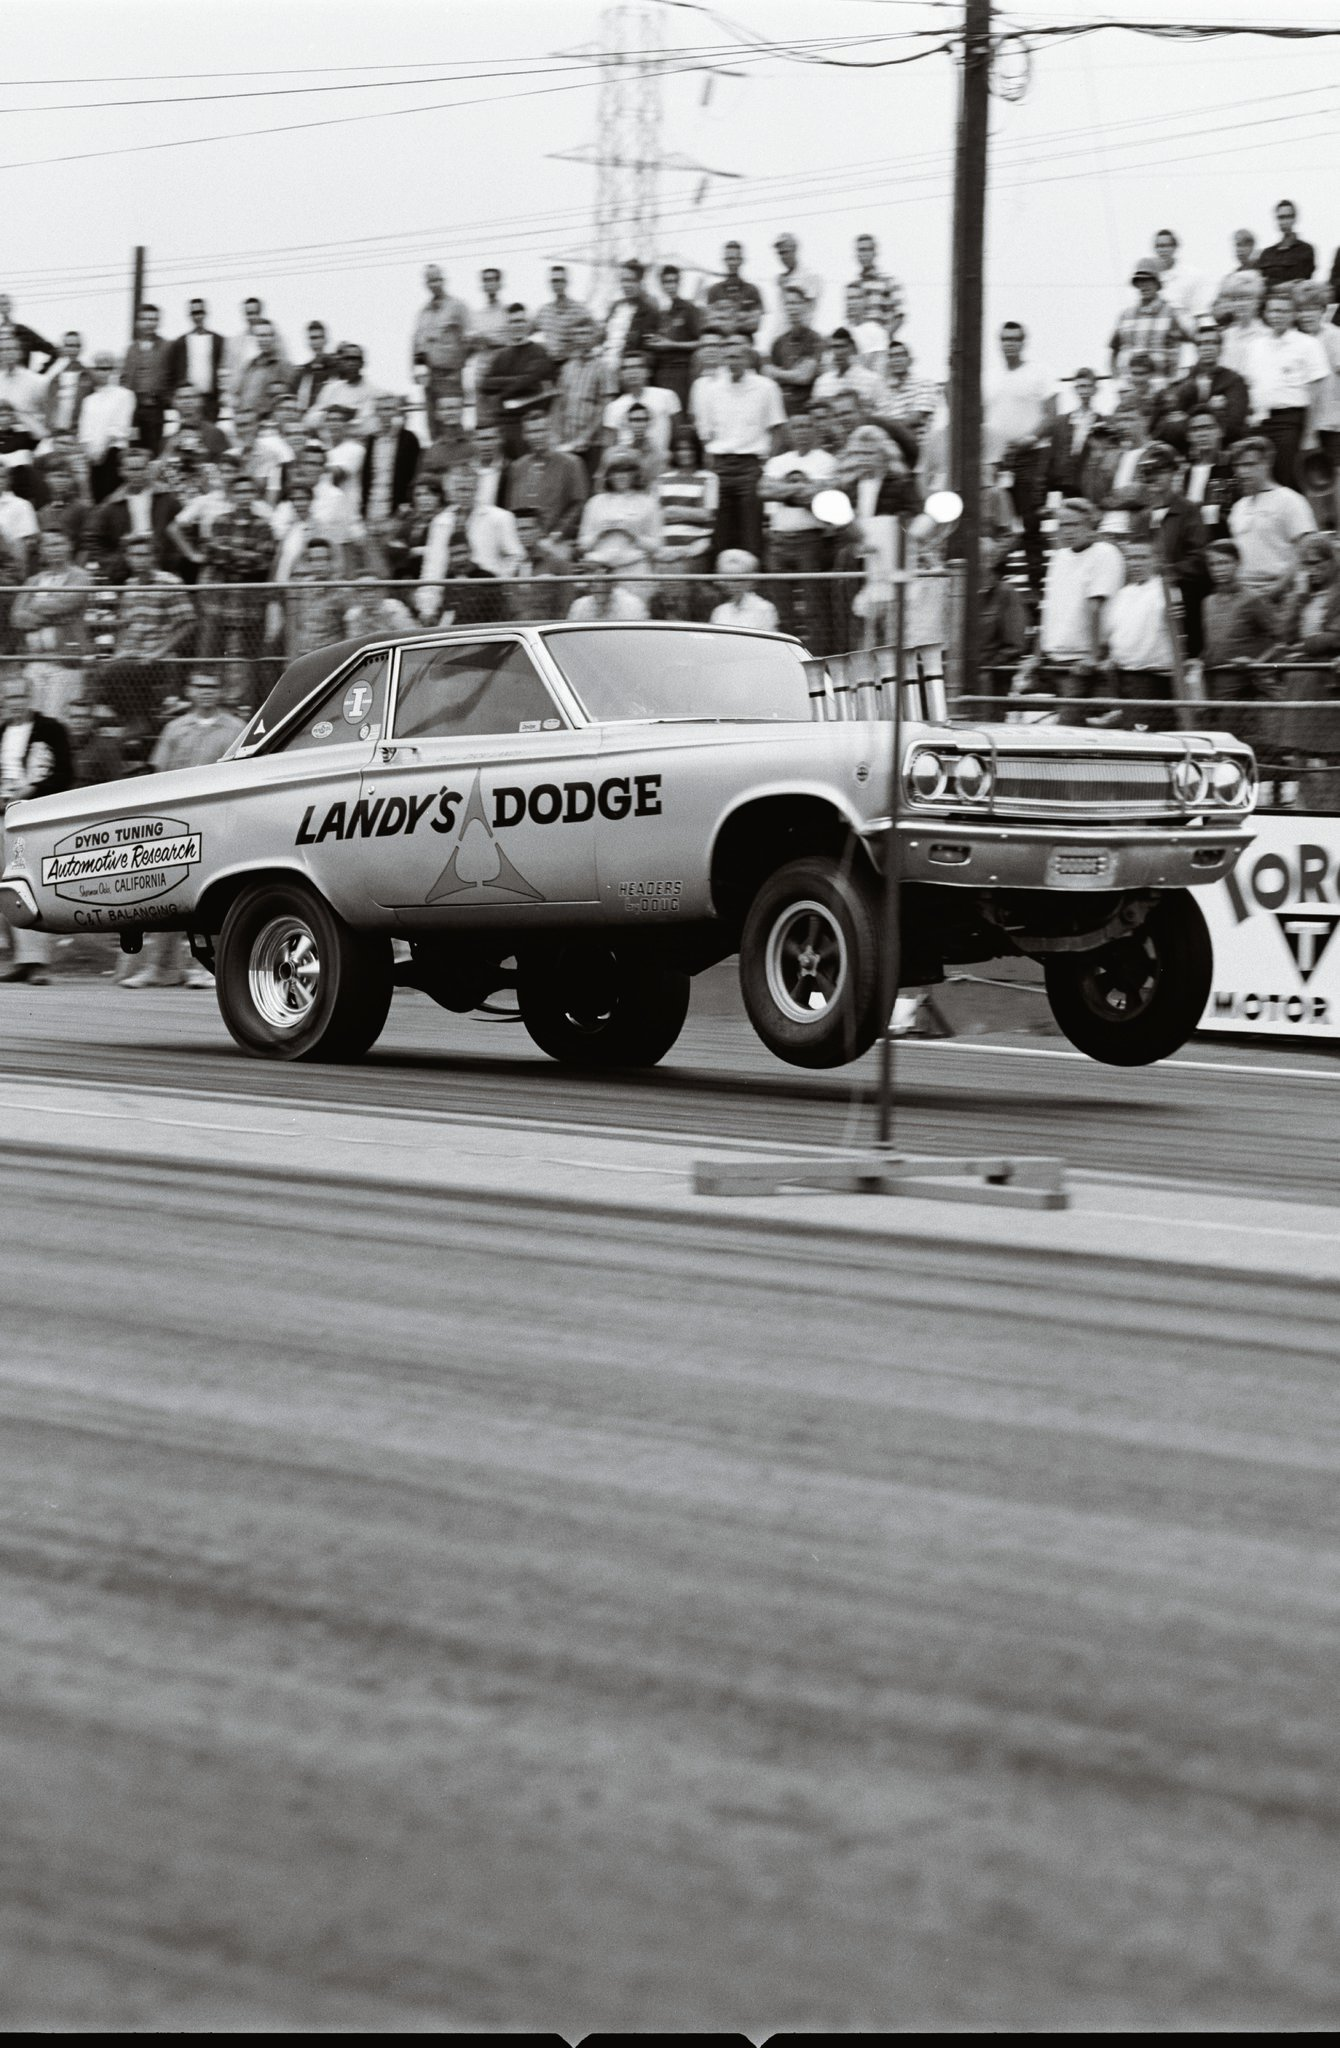 The Ramchargers were first to show up with one of those funny-looking altered-wheelbase (AWB) cars. The radical modifications resulted in better weight transfer and increased traction at launch. Dick Landy realized the benefits and built this '65 injected Hemi AWB Dodge Coronet. These funny-looking AWB cars soon evolved into the Funny Cars that still run today.